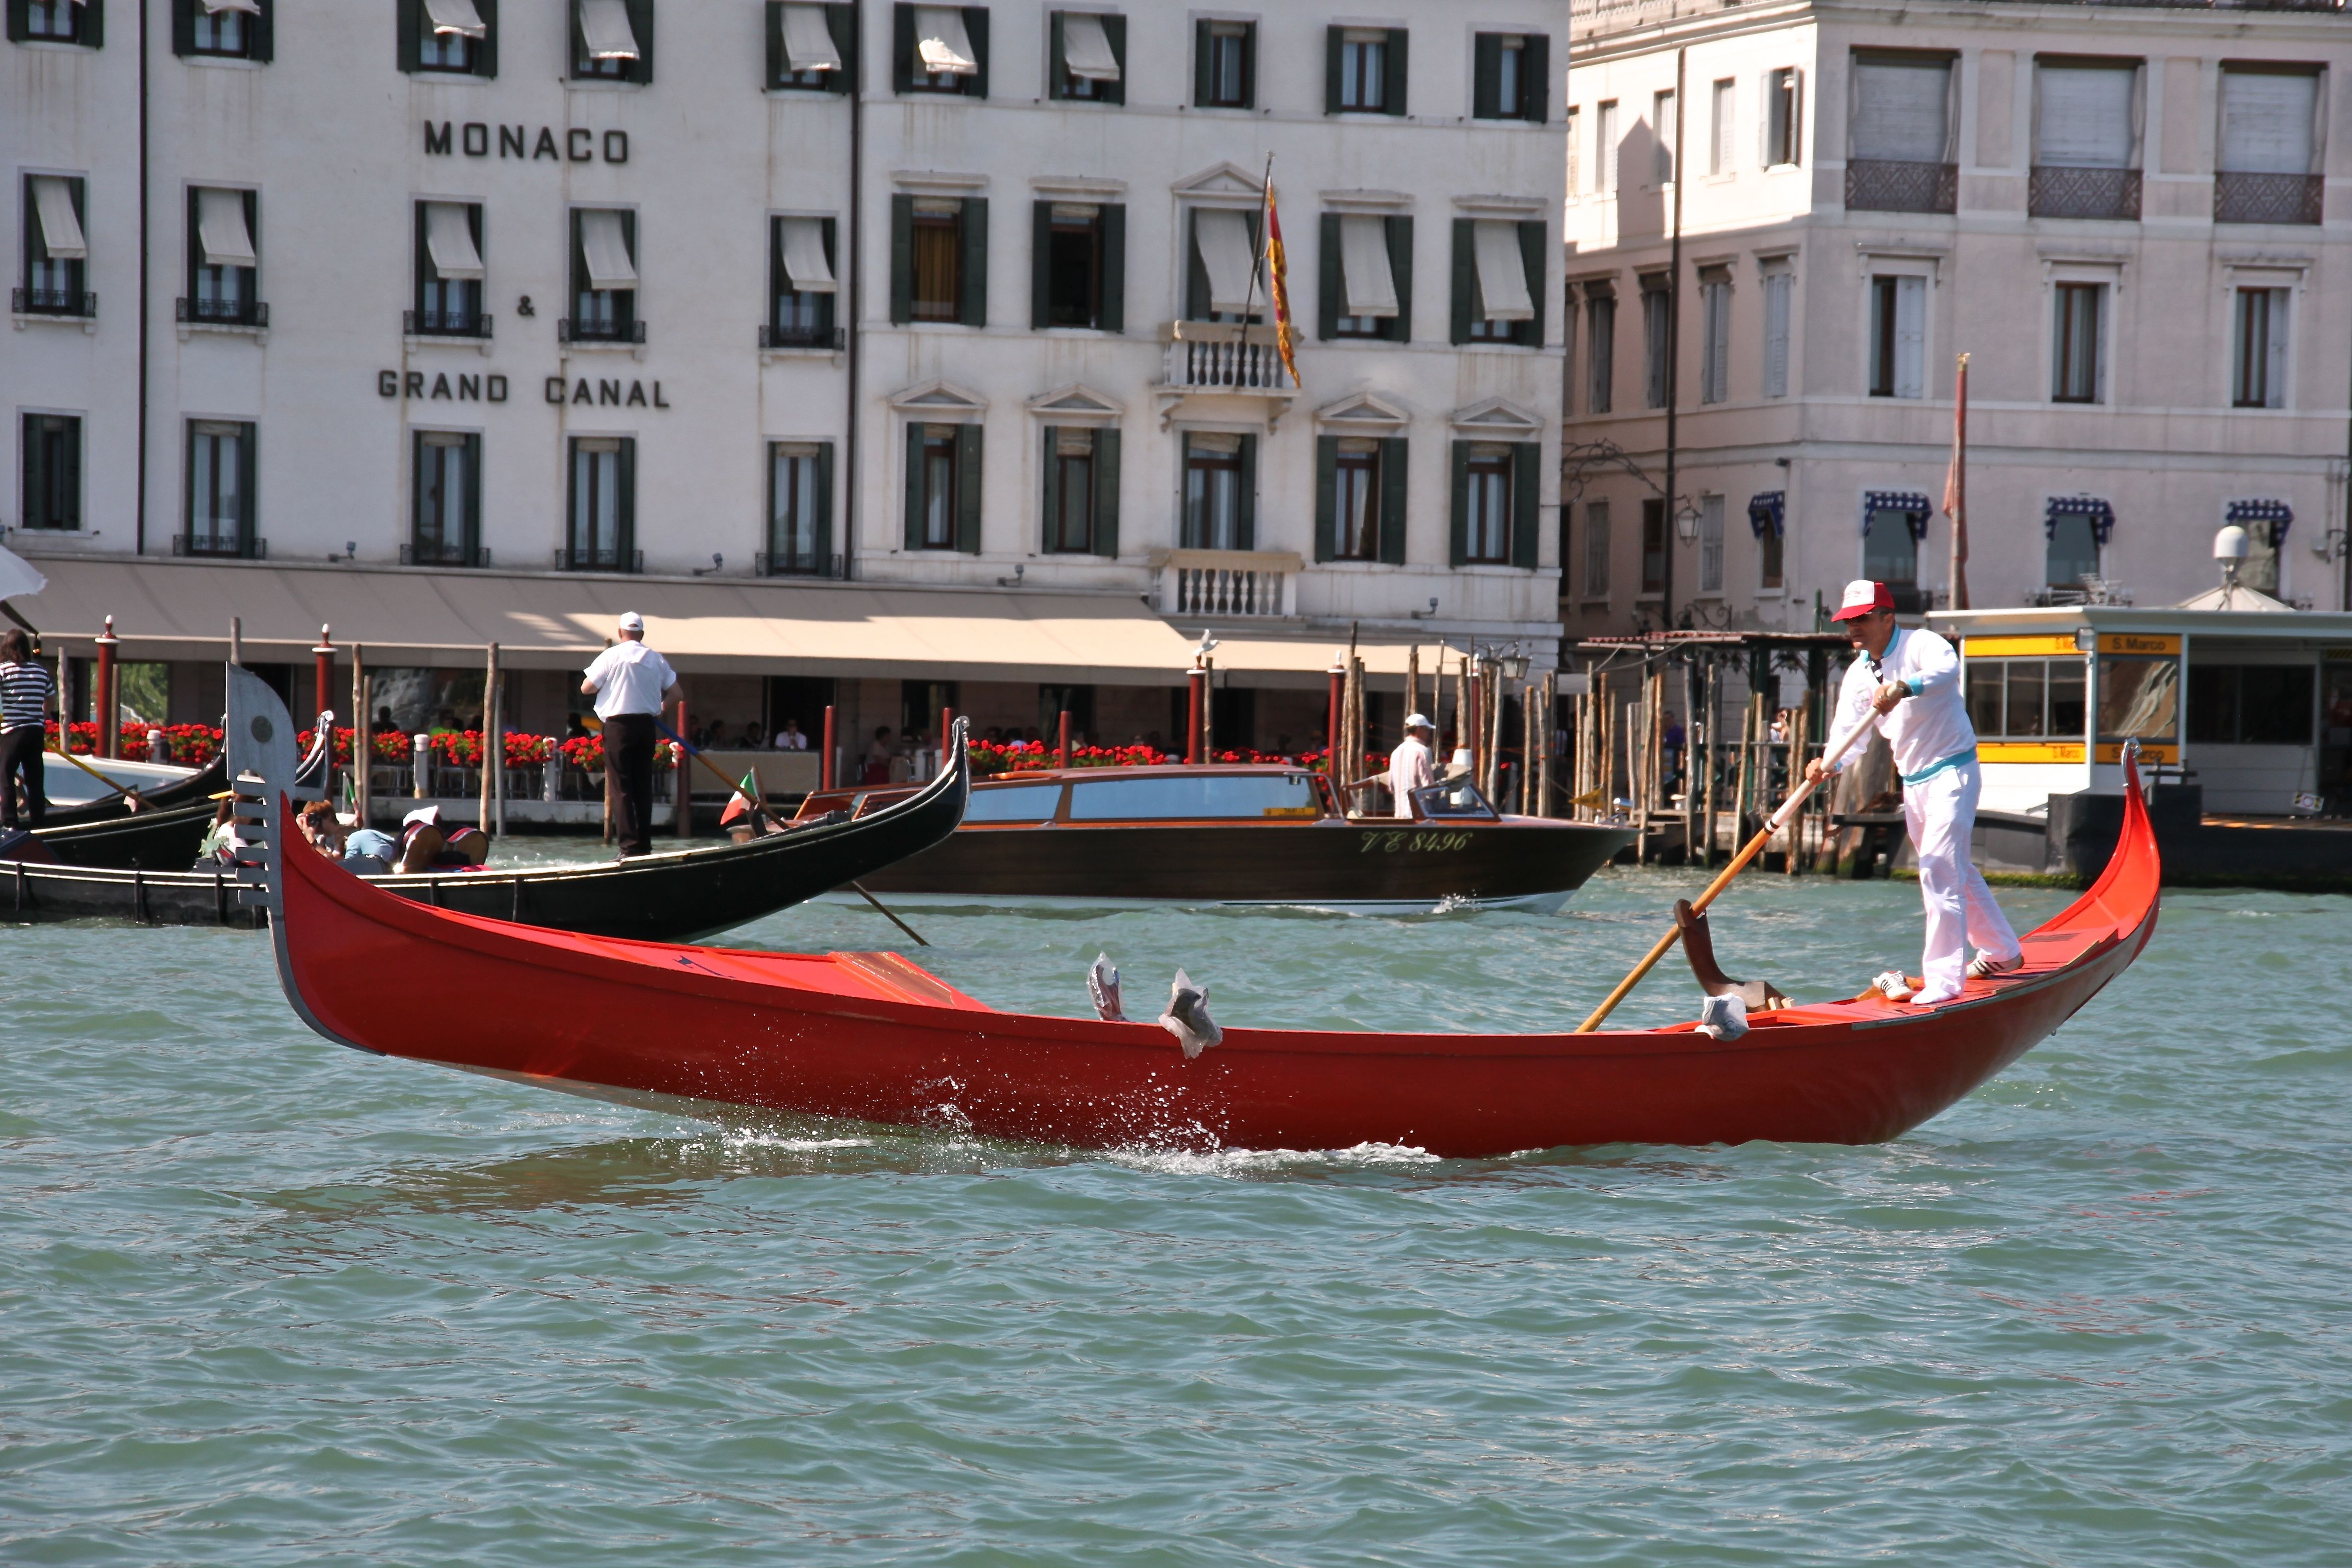 A racing gondola powers down the Grand Canal